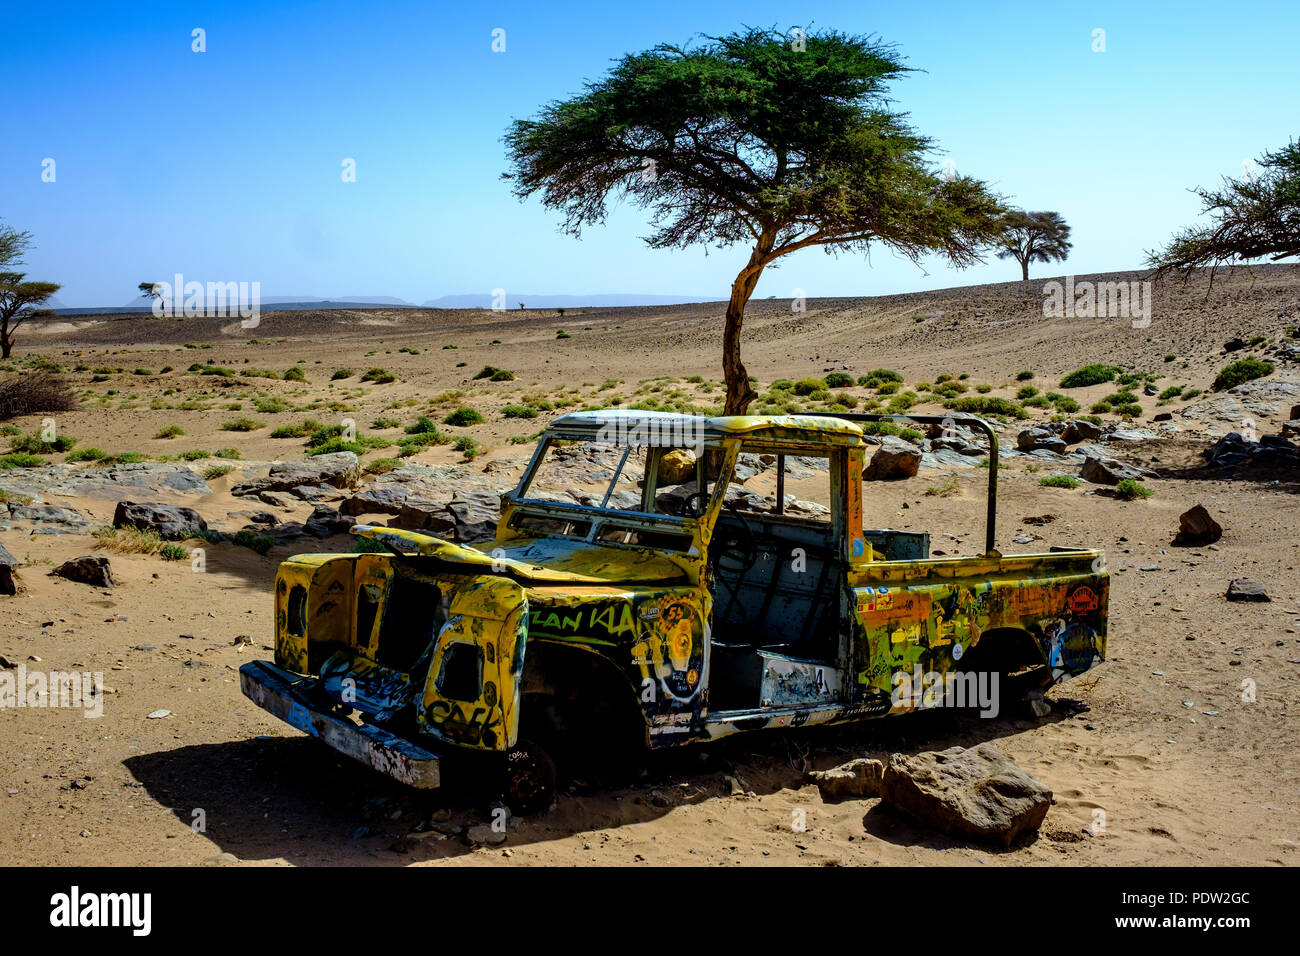 An old abandoned Land Rover in the Sahara desert at L'oasis Sacrée, Morocco - Stock Image